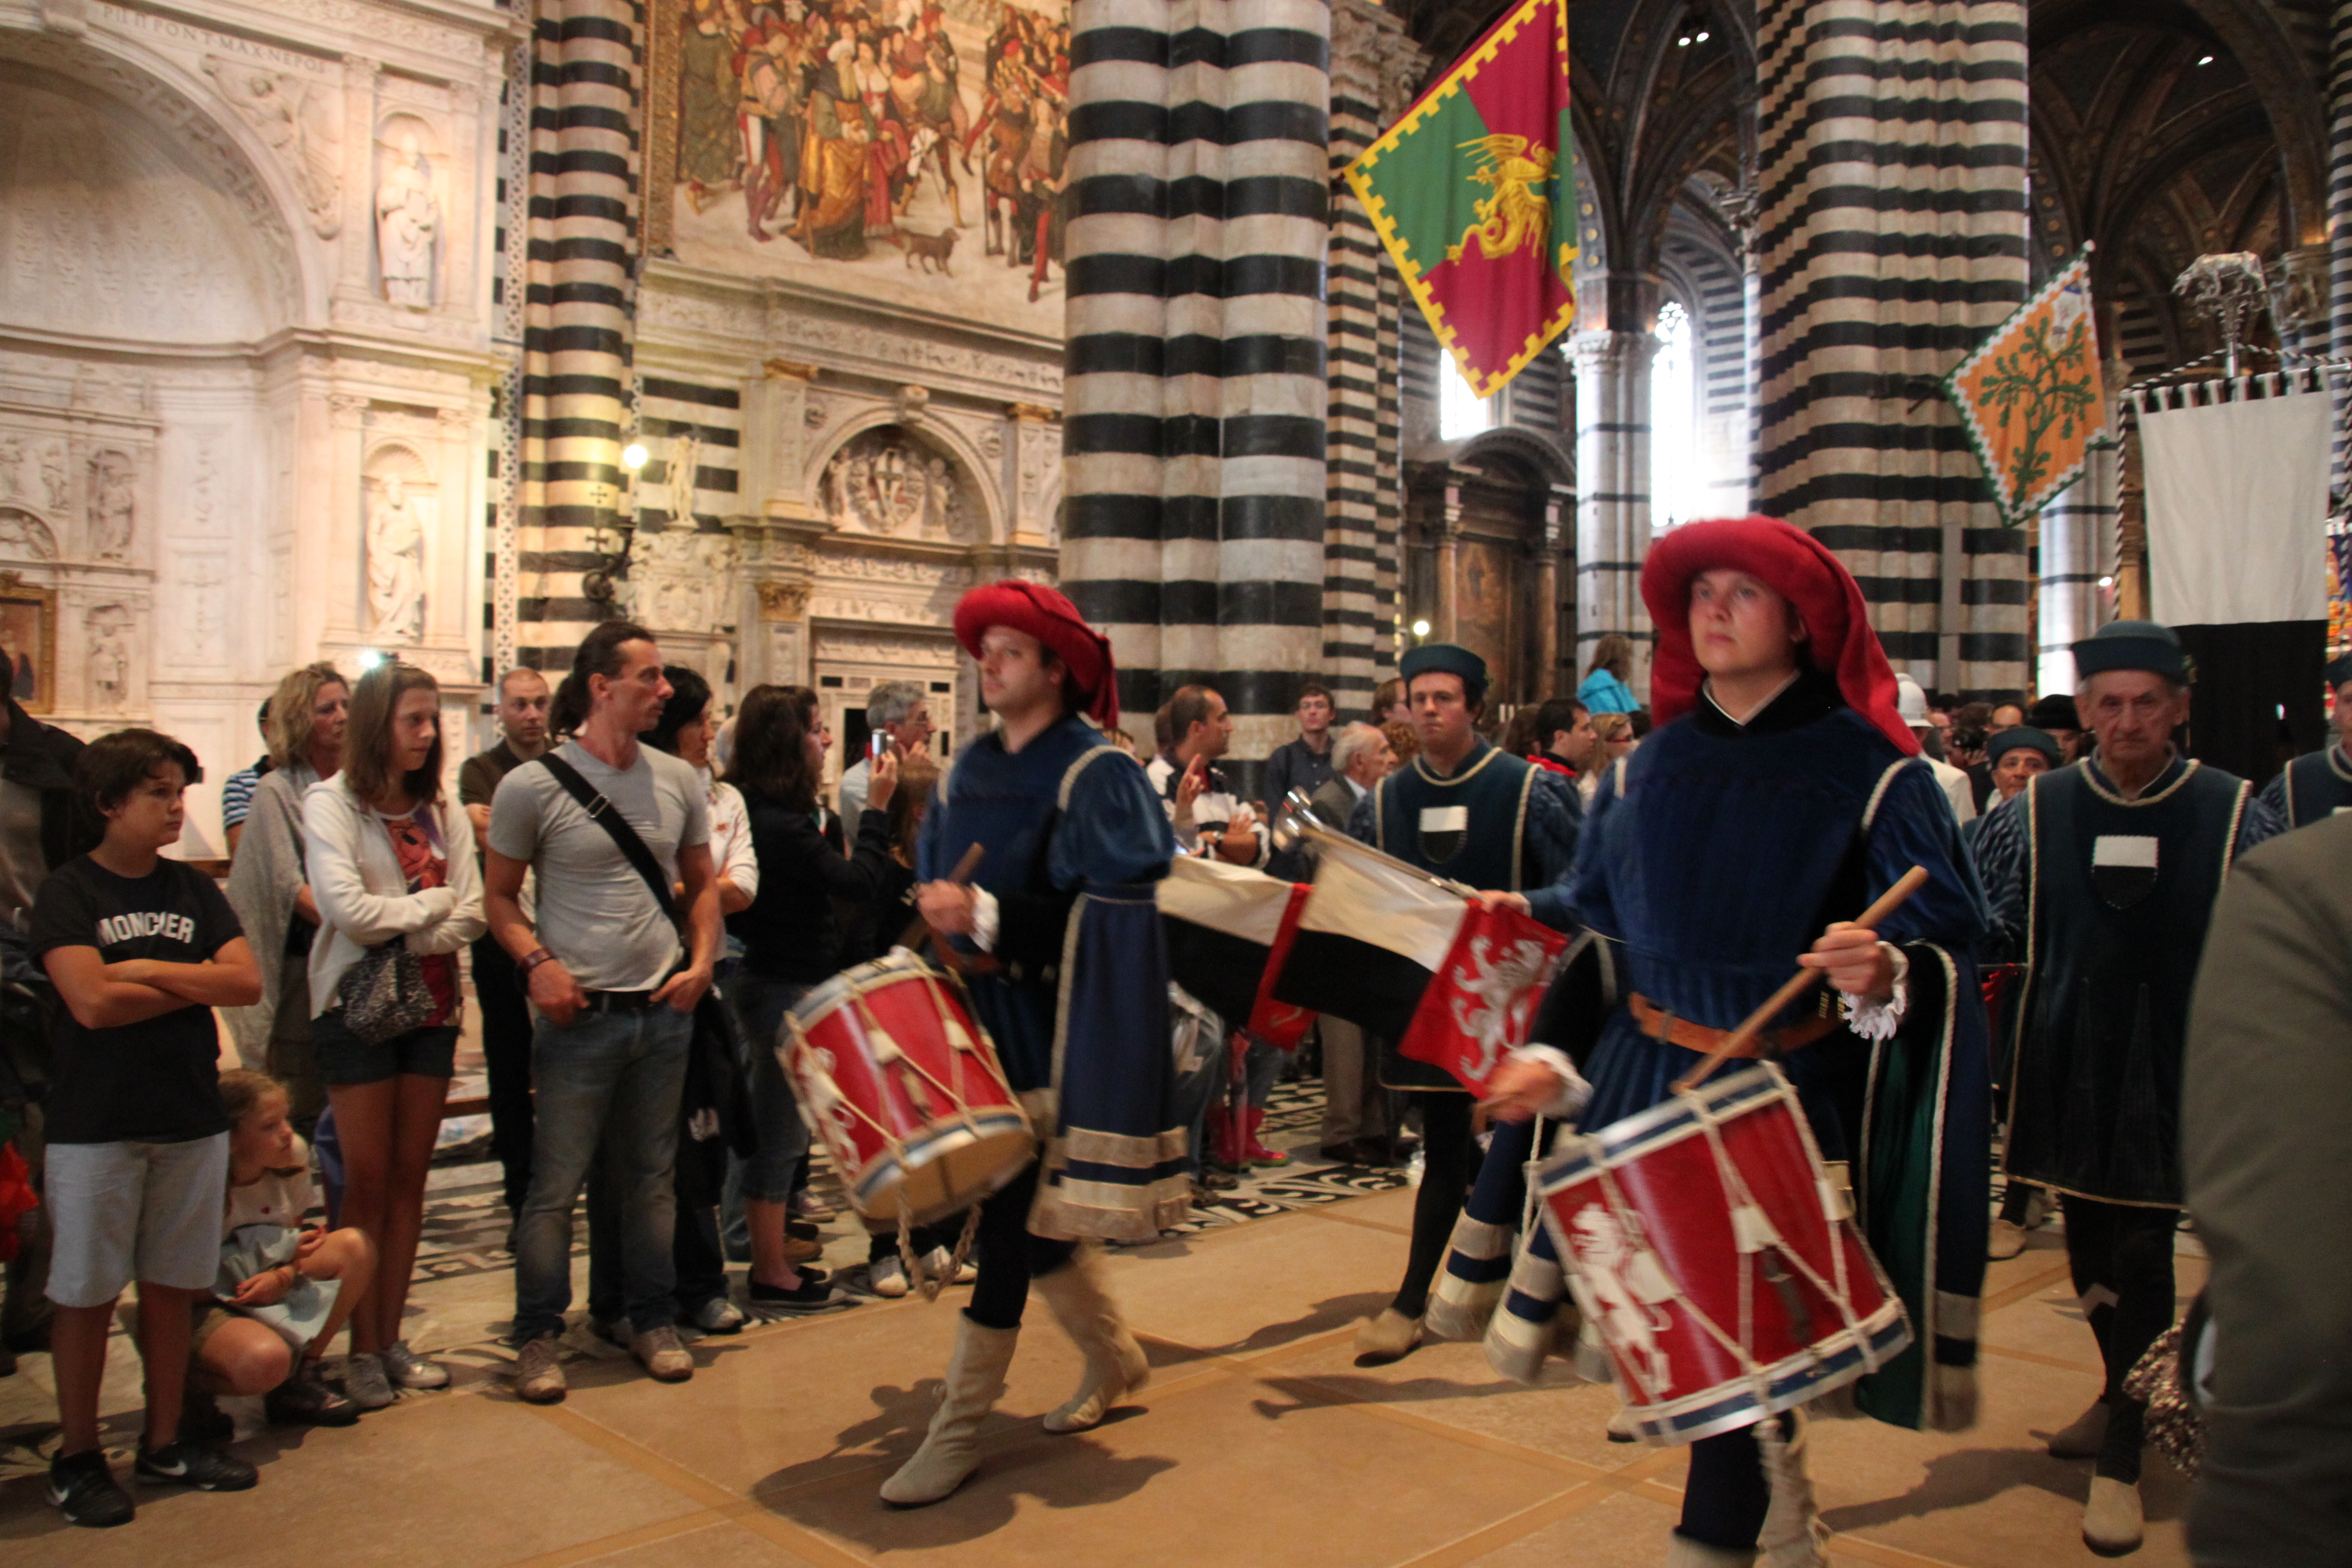 Contradas parade out of the Duomo after the blessing ceremony, their flags held aloft to the sound of drummers